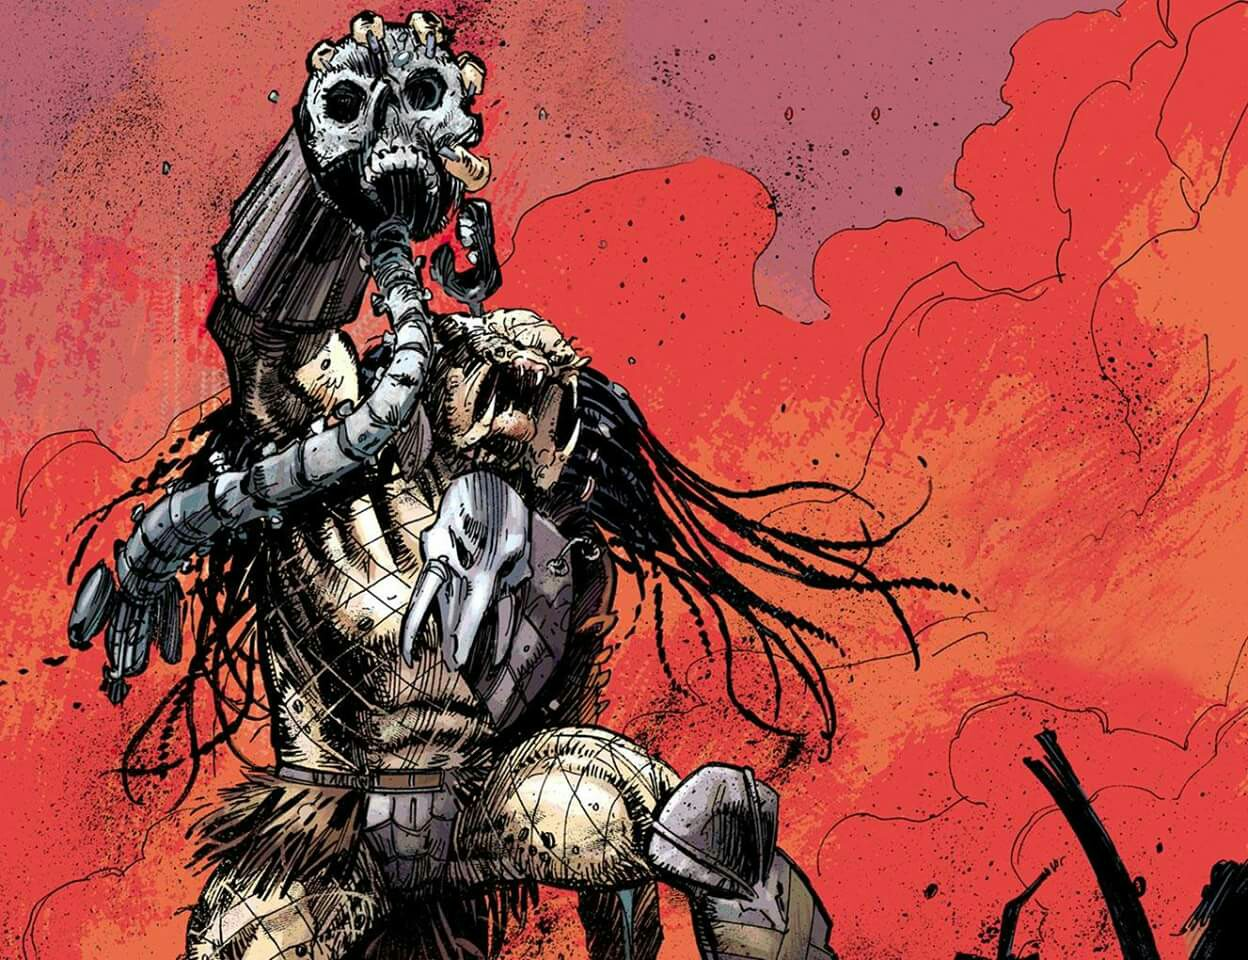 Drawn predator engineer comic Stands an The Taken of